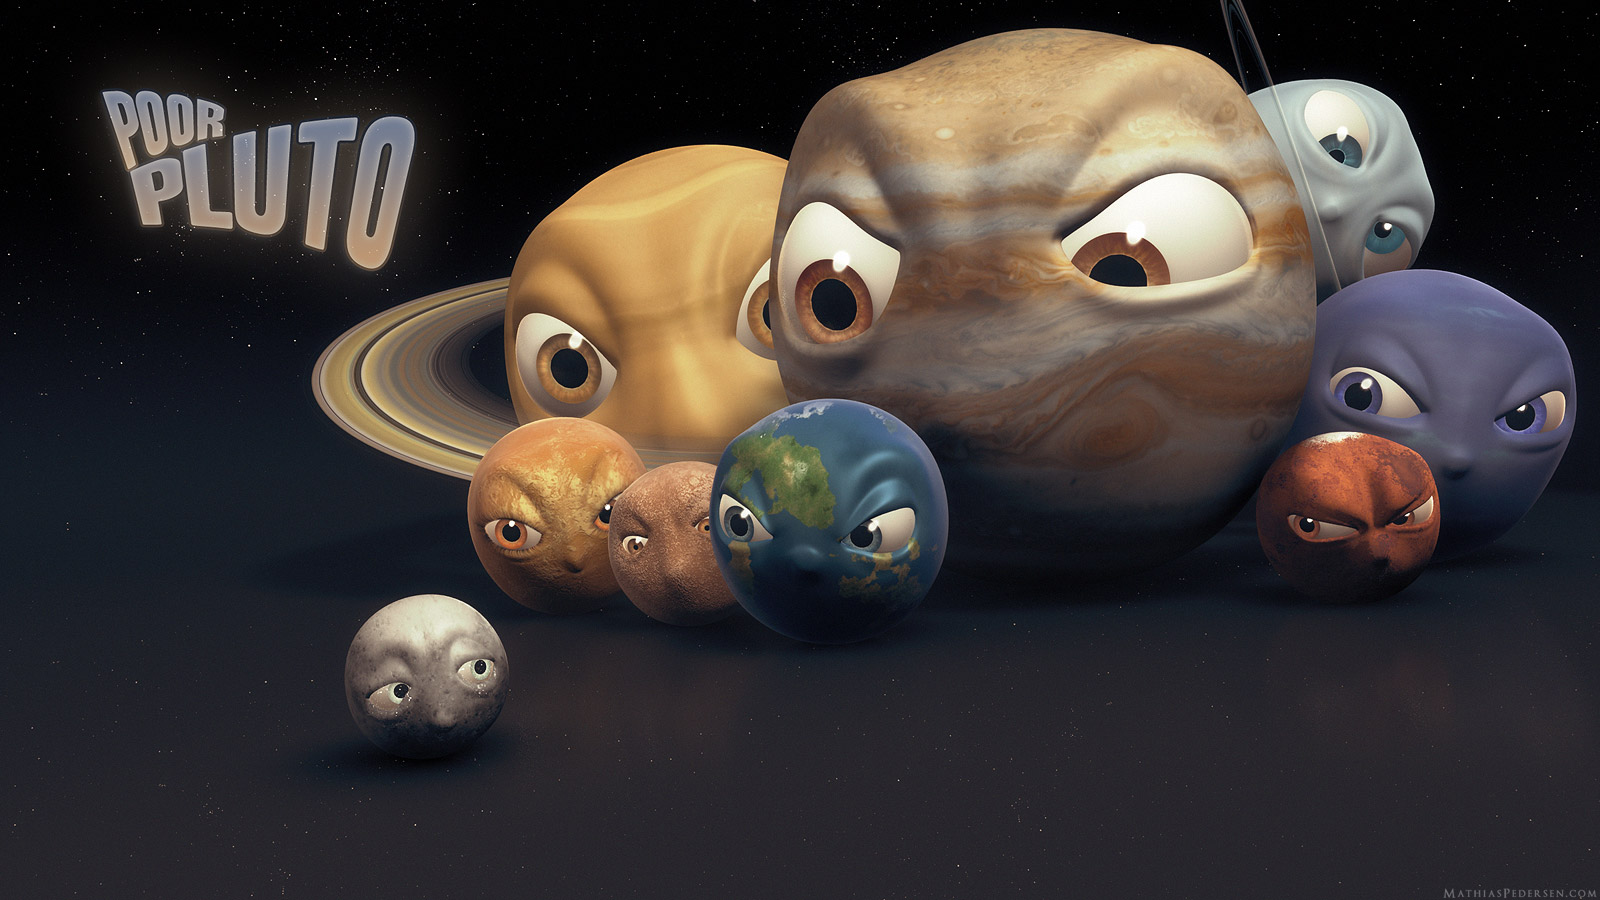 The debate over Pluto's planetary state still rages on…